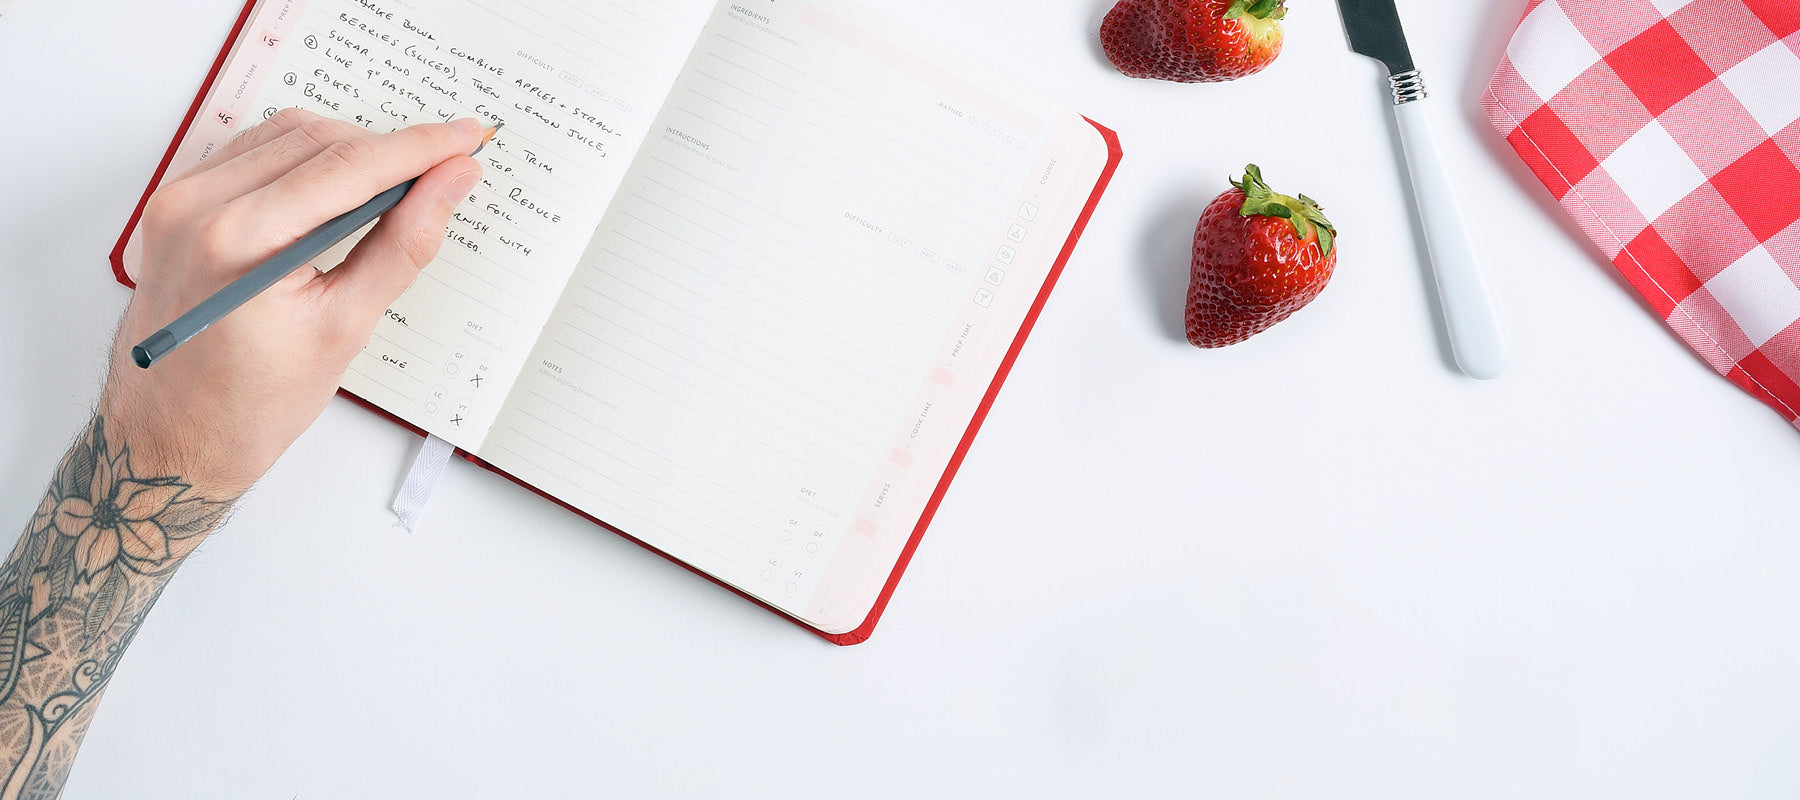 Open savor journal with strawberries, butter knife, tablecloth